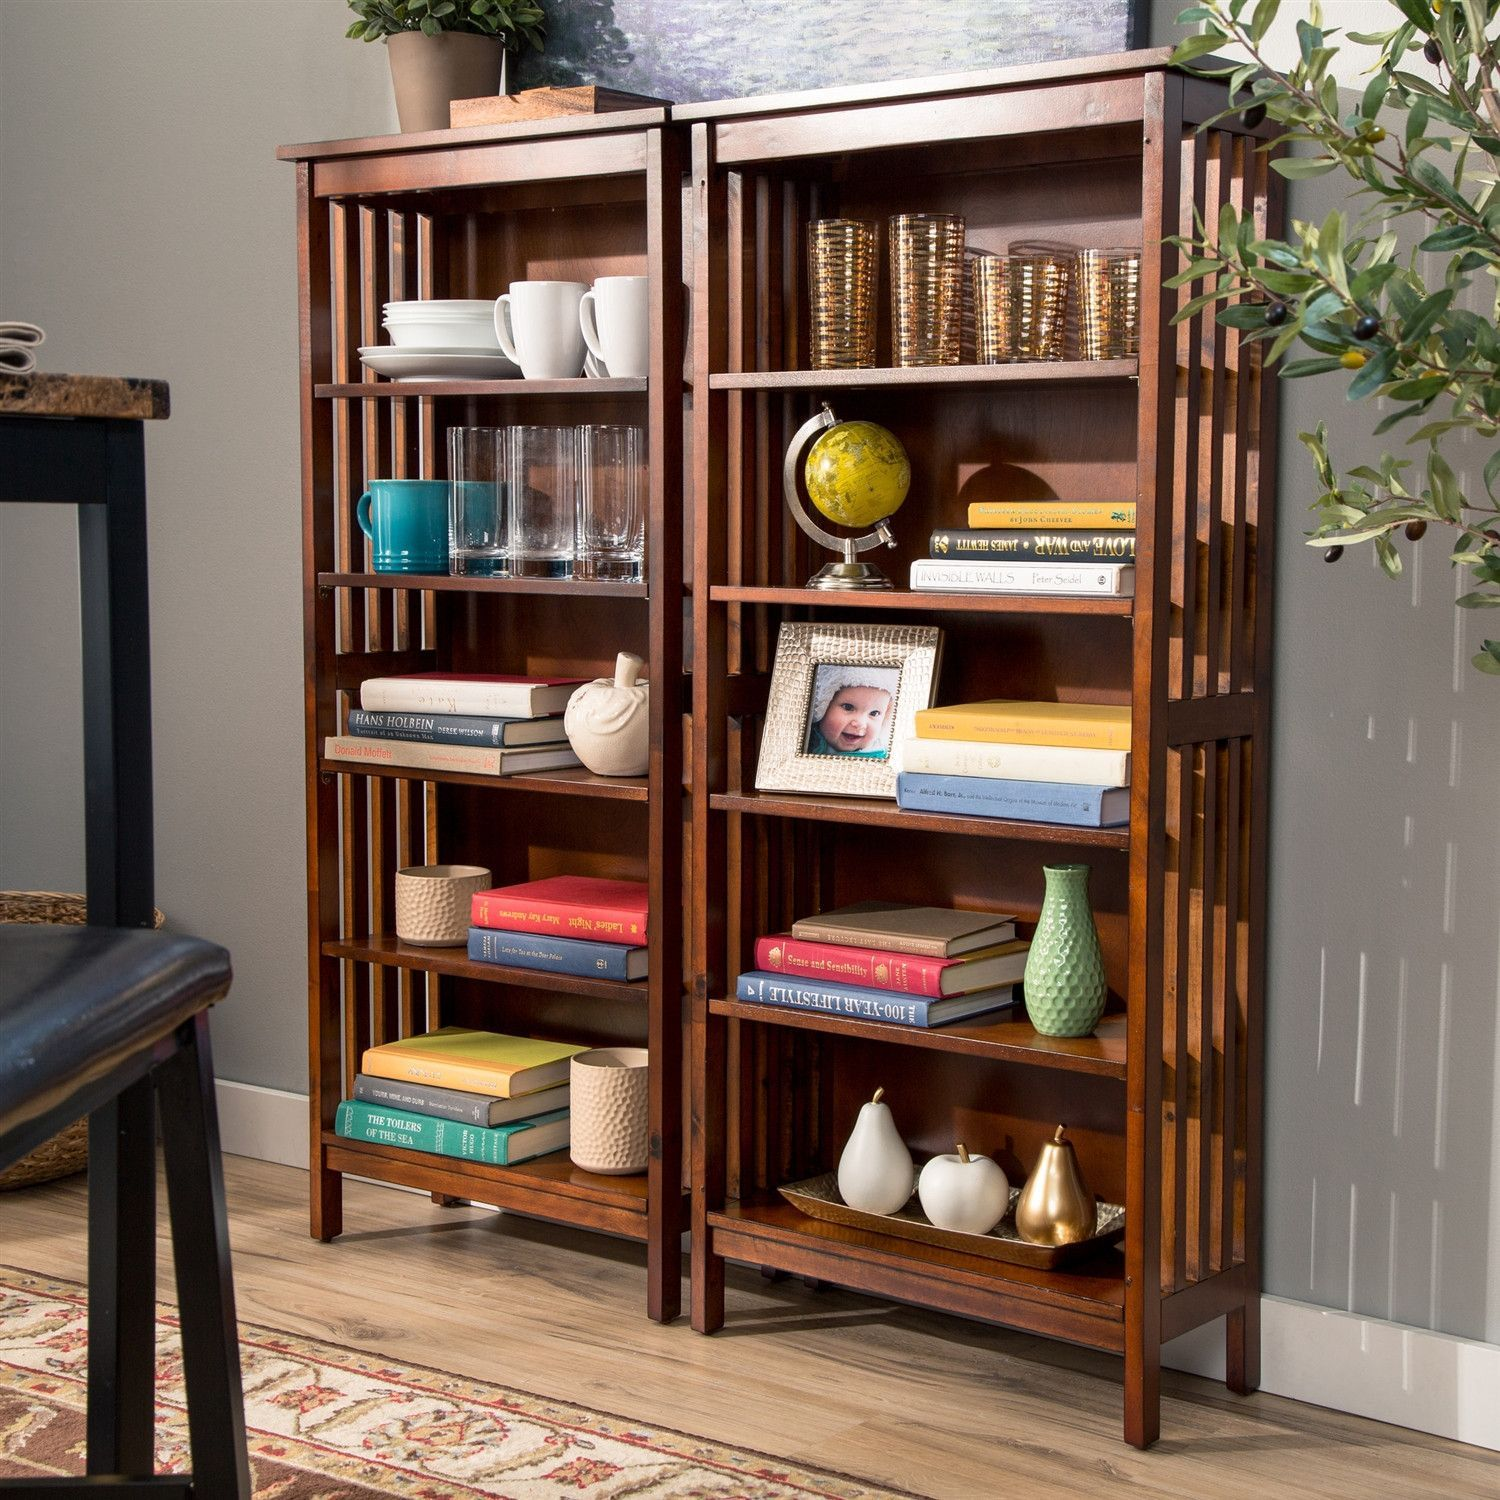 Durable 48-inch High Bookcase with 5-Shelves in Antique Oak Finish